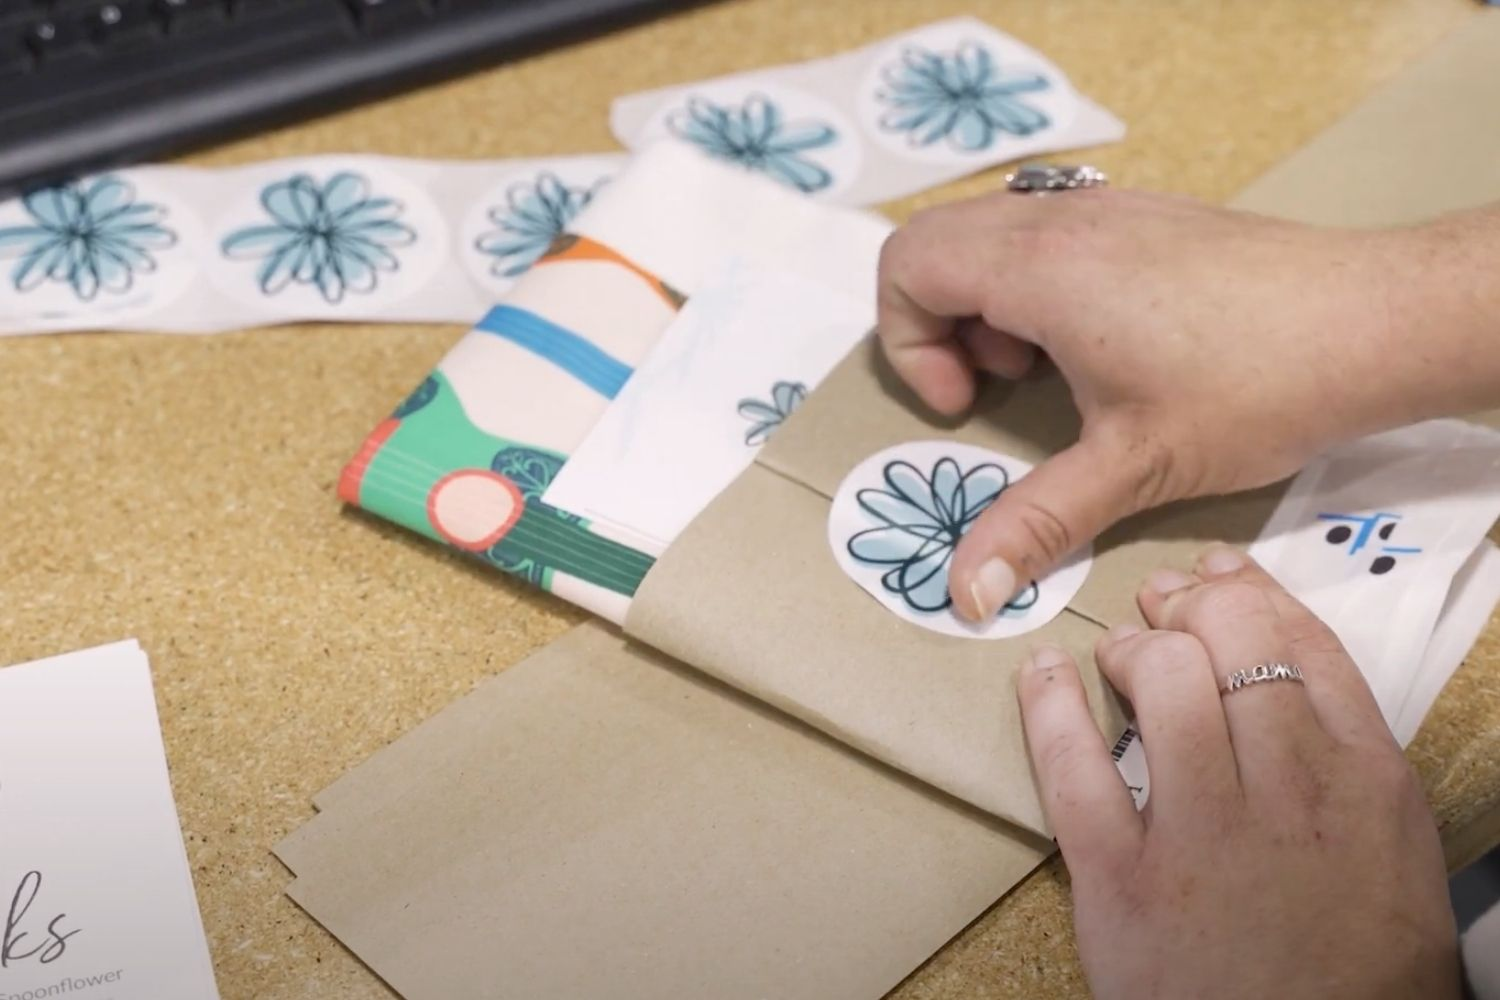 Placing a spoonflower sticker on top of packaging